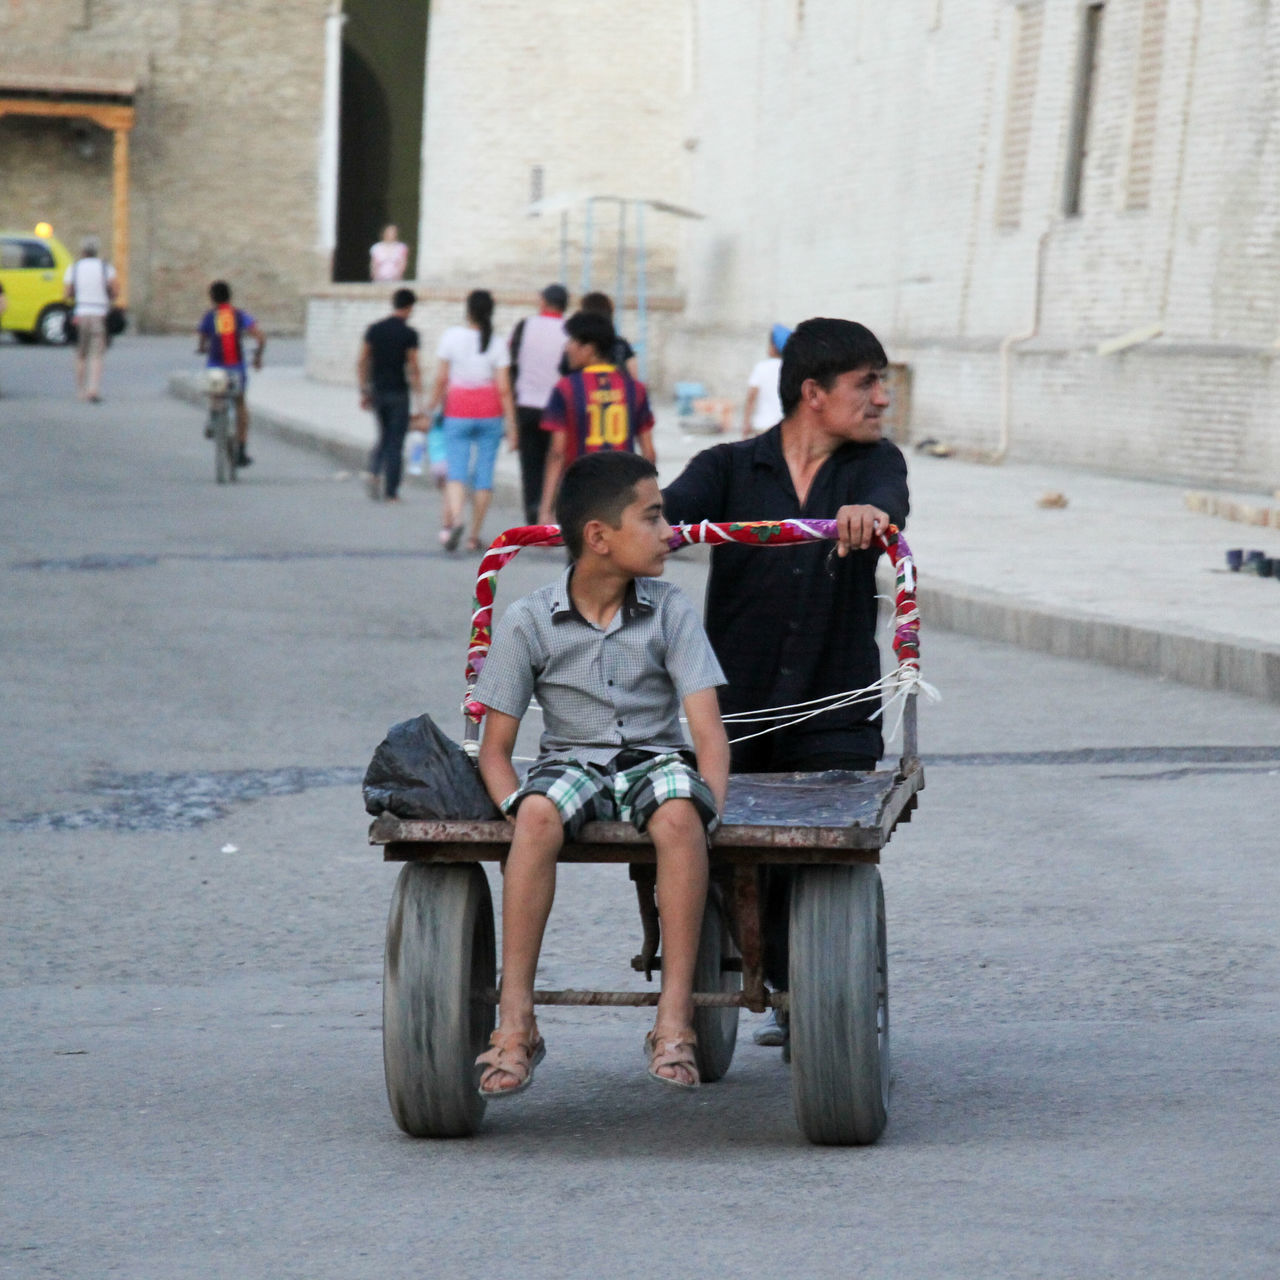 Adult Architecture Building Exterior Built Structure Bukhara Childhood City Day Father & Son Full Length Lifestyles Outdoors People Real People Riding Silk Road Sitting Street Photography Togetherness Transportation Uzbek People Uzbekistan